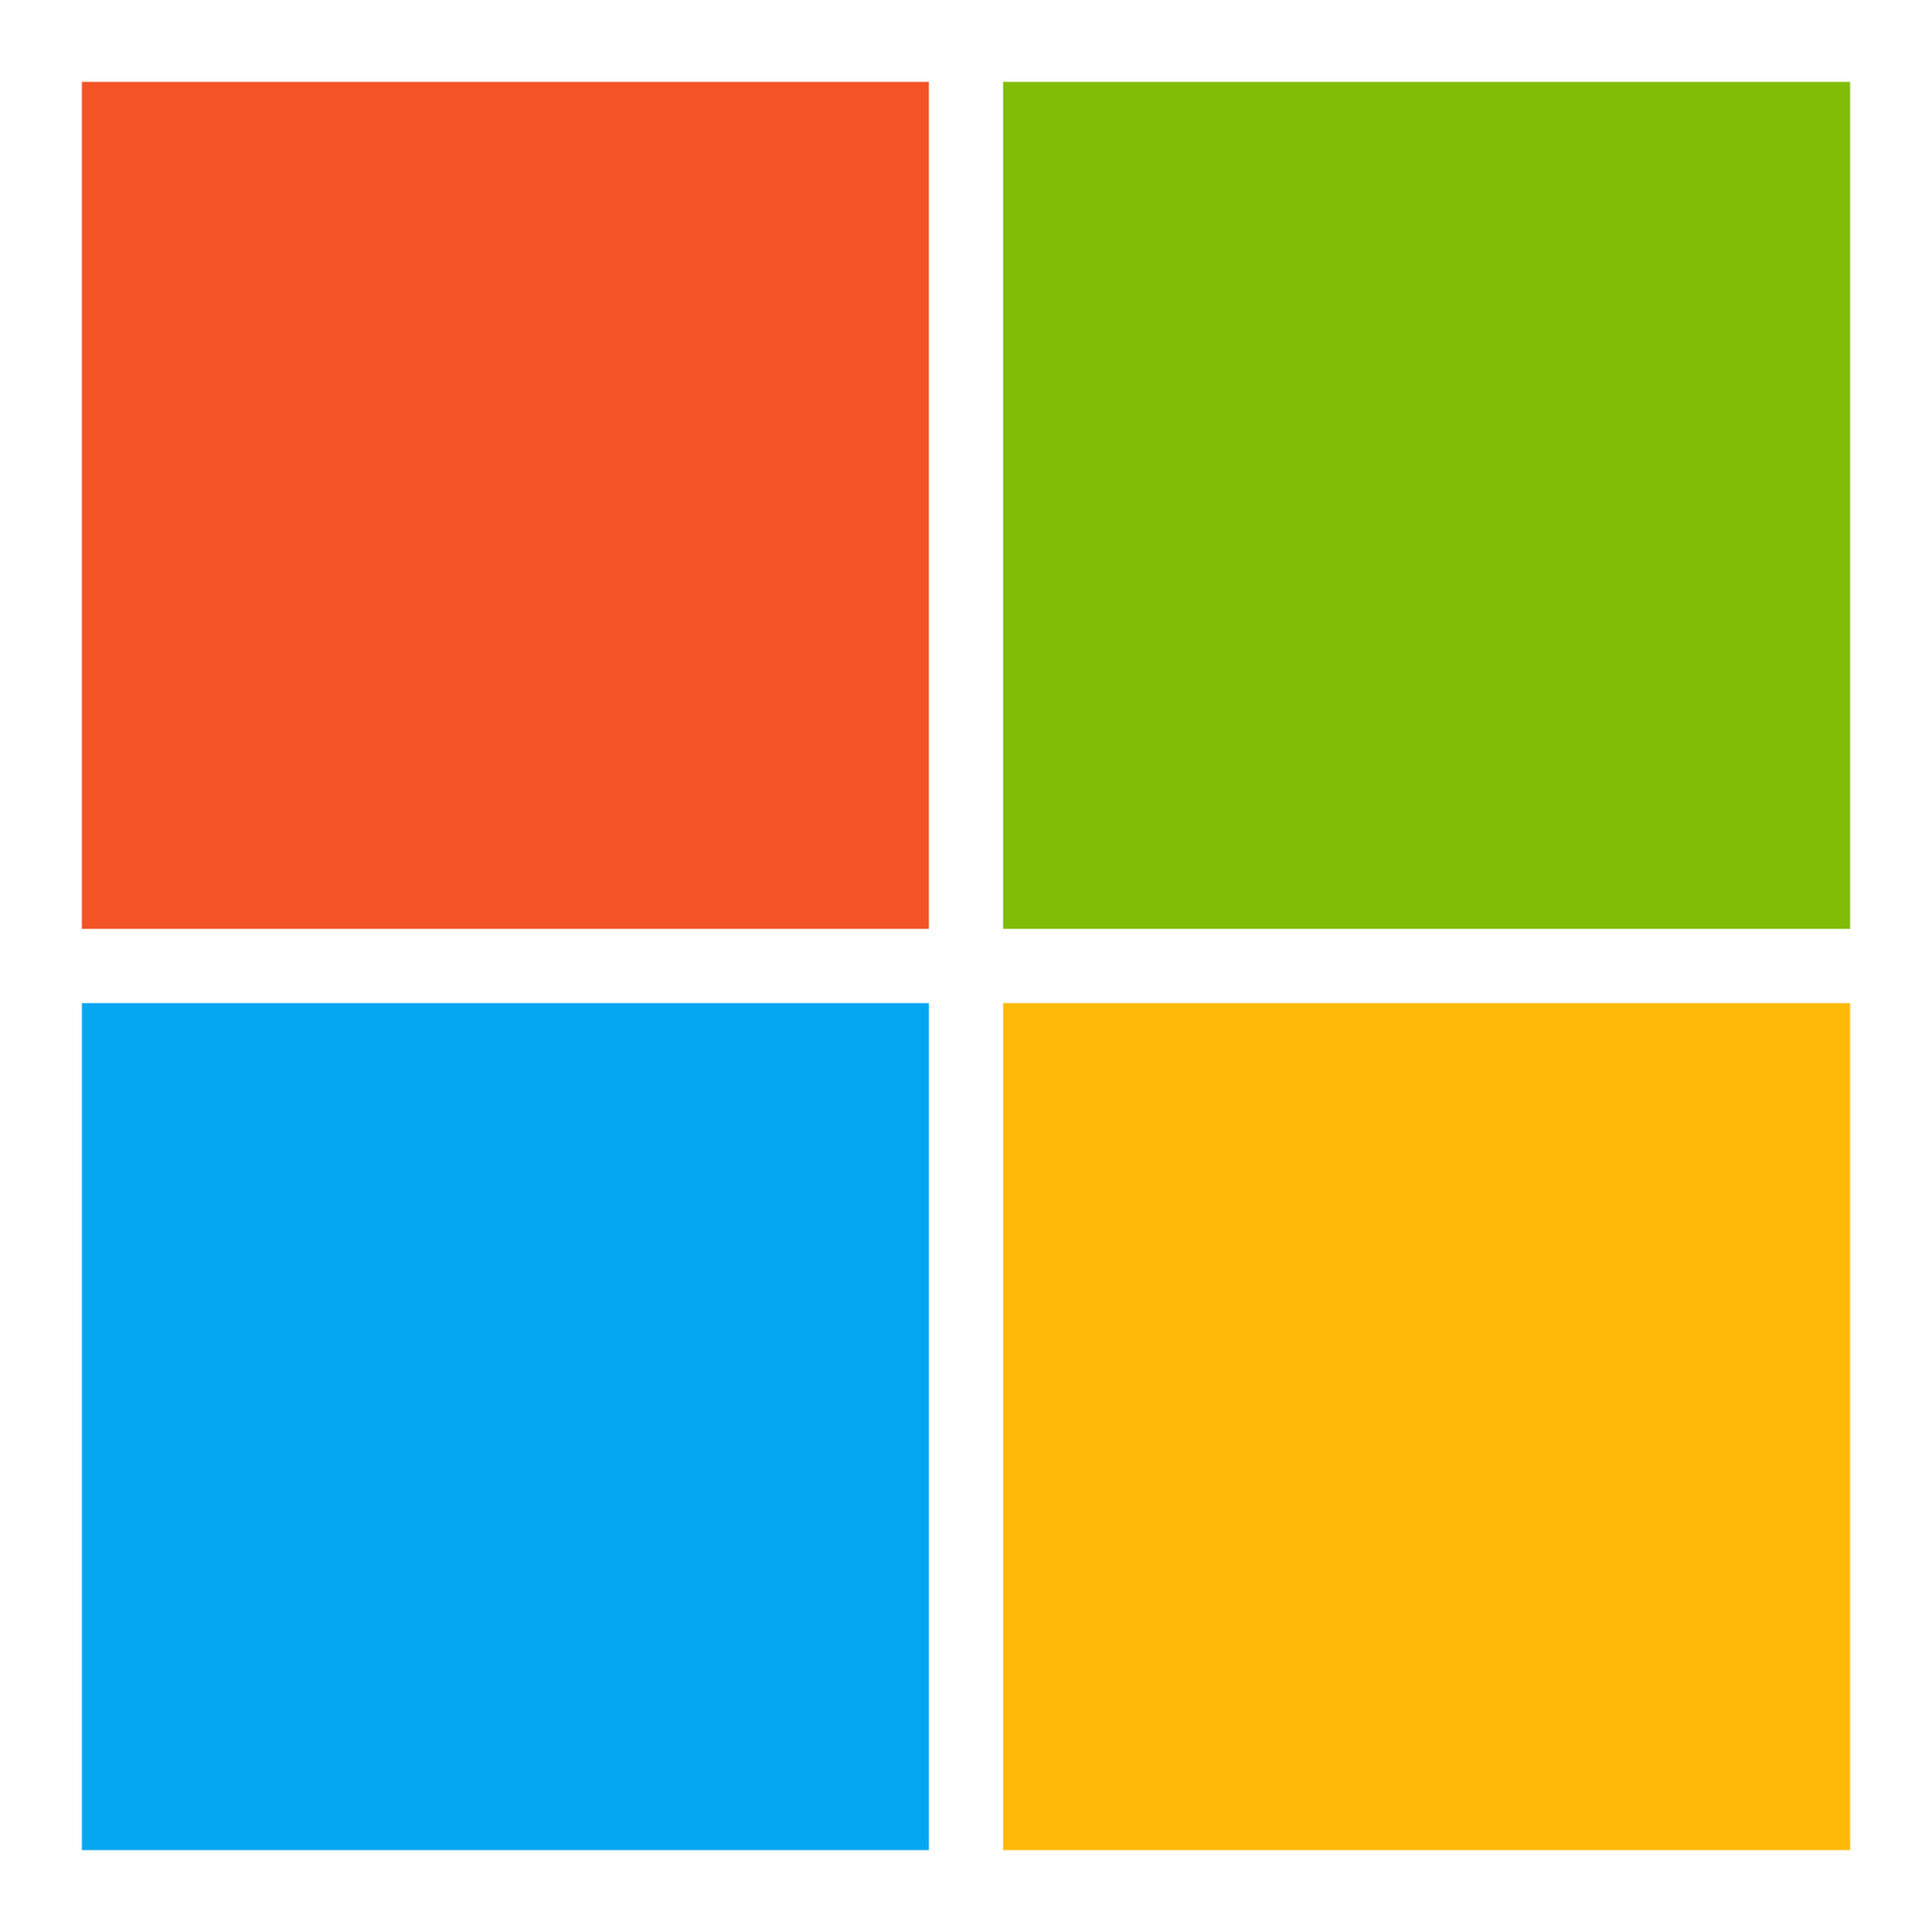 microsoft logo icon png transparent #4834